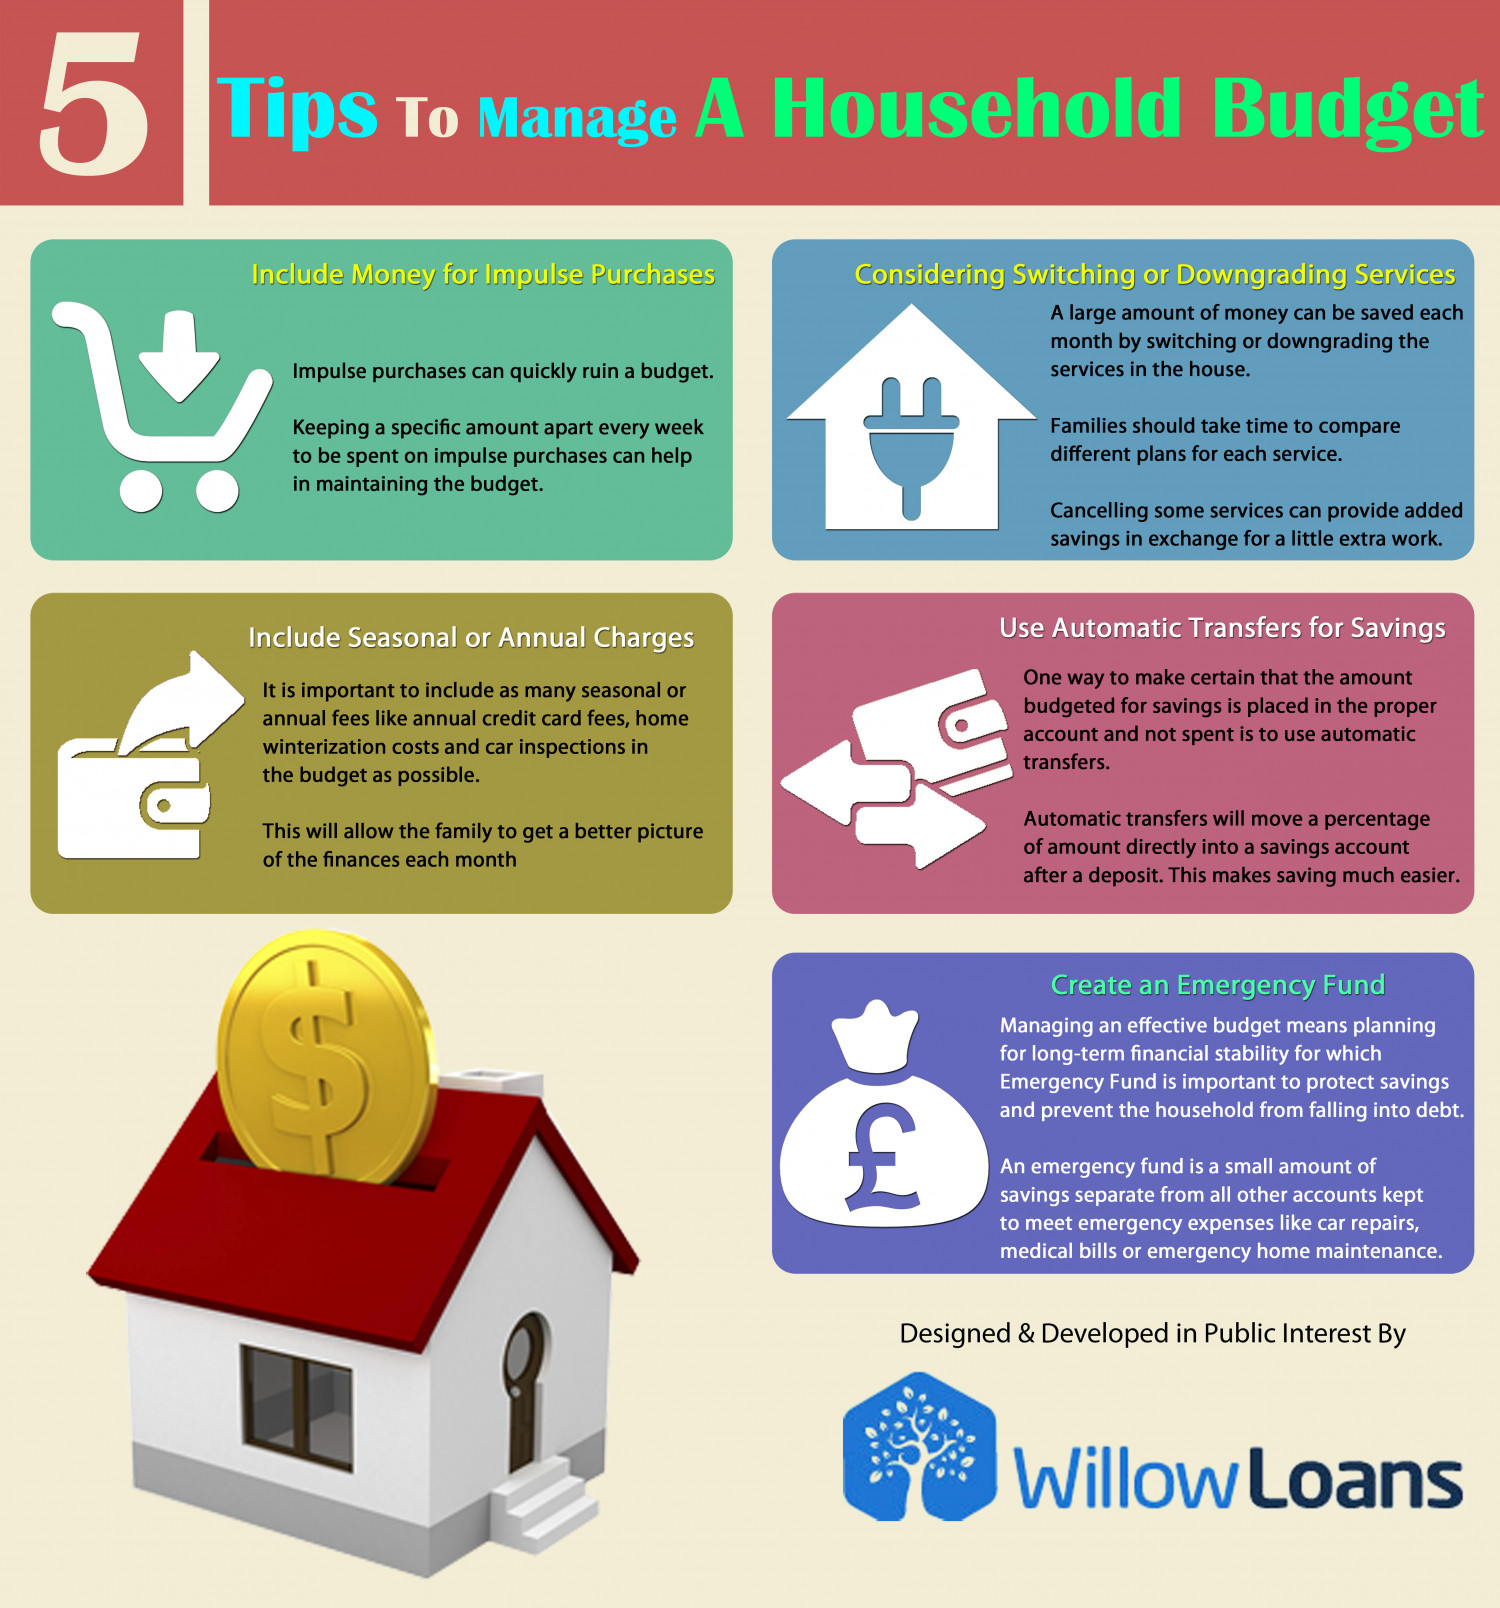 Budget Tips 5 Tips To Manage A Household Budget | Visual.ly